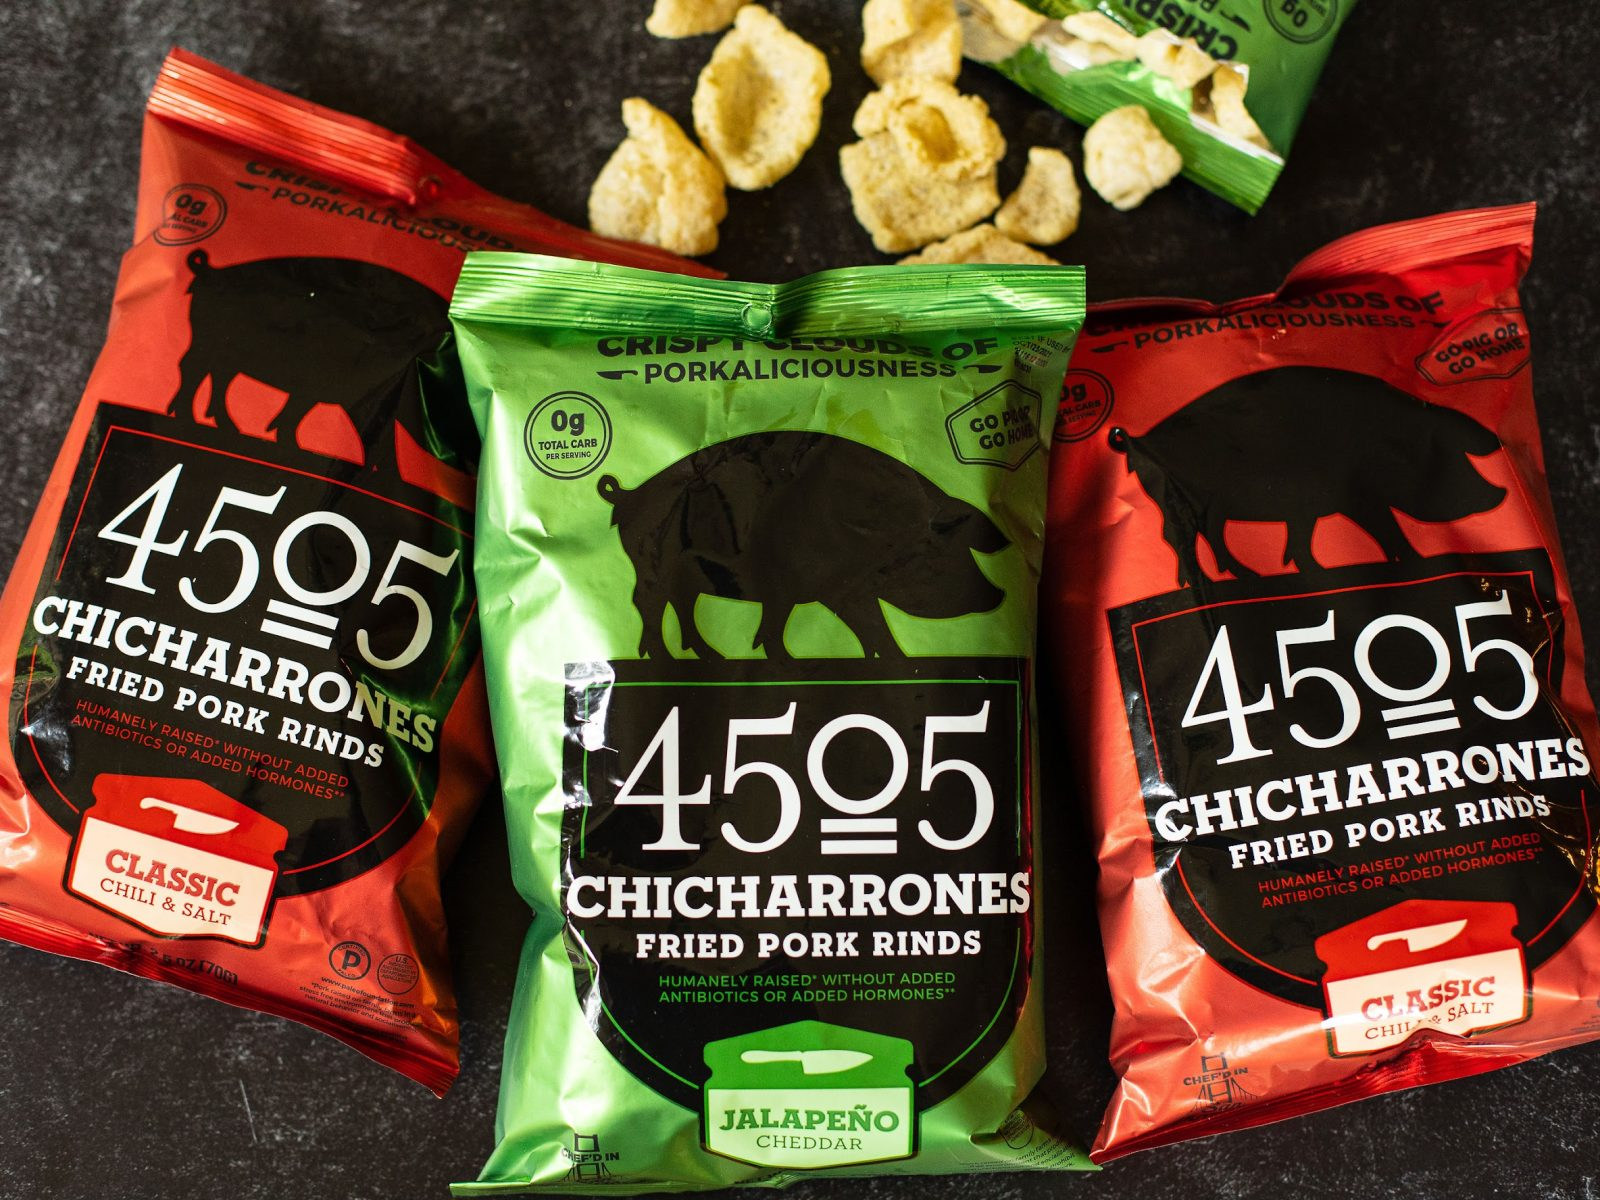 4505 Chicharrones Are Now Available At Publix - Three Winners Get A $50 Publix Gift Card & Lots Of FREE 4505 Chicharrones! on I Heart Publix